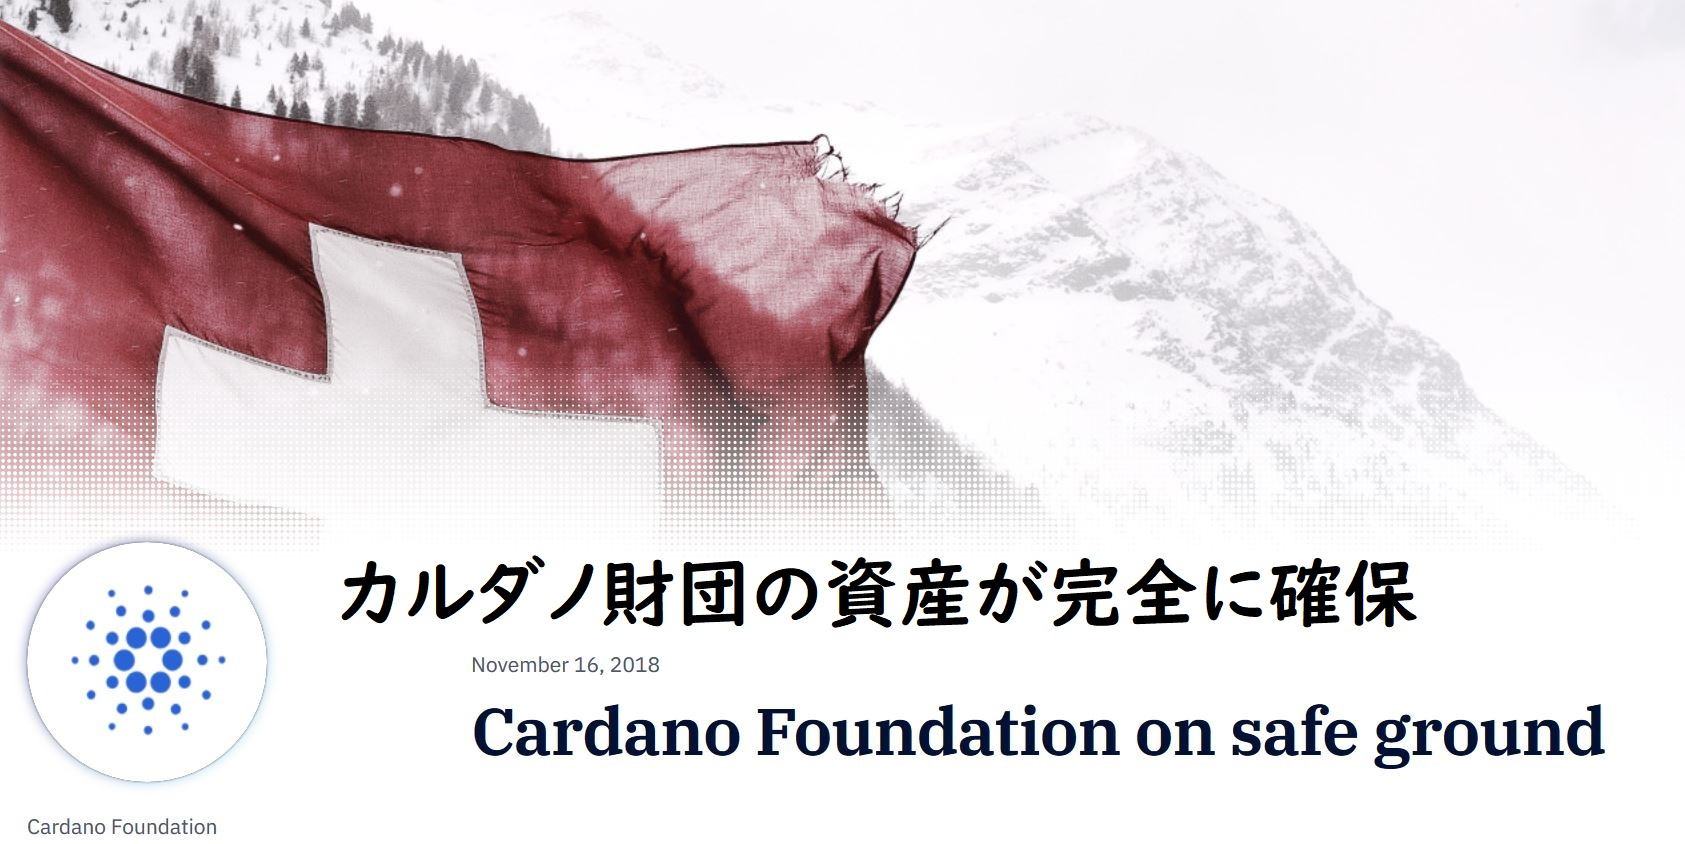 We fully secure assets of the Cardano Foundation